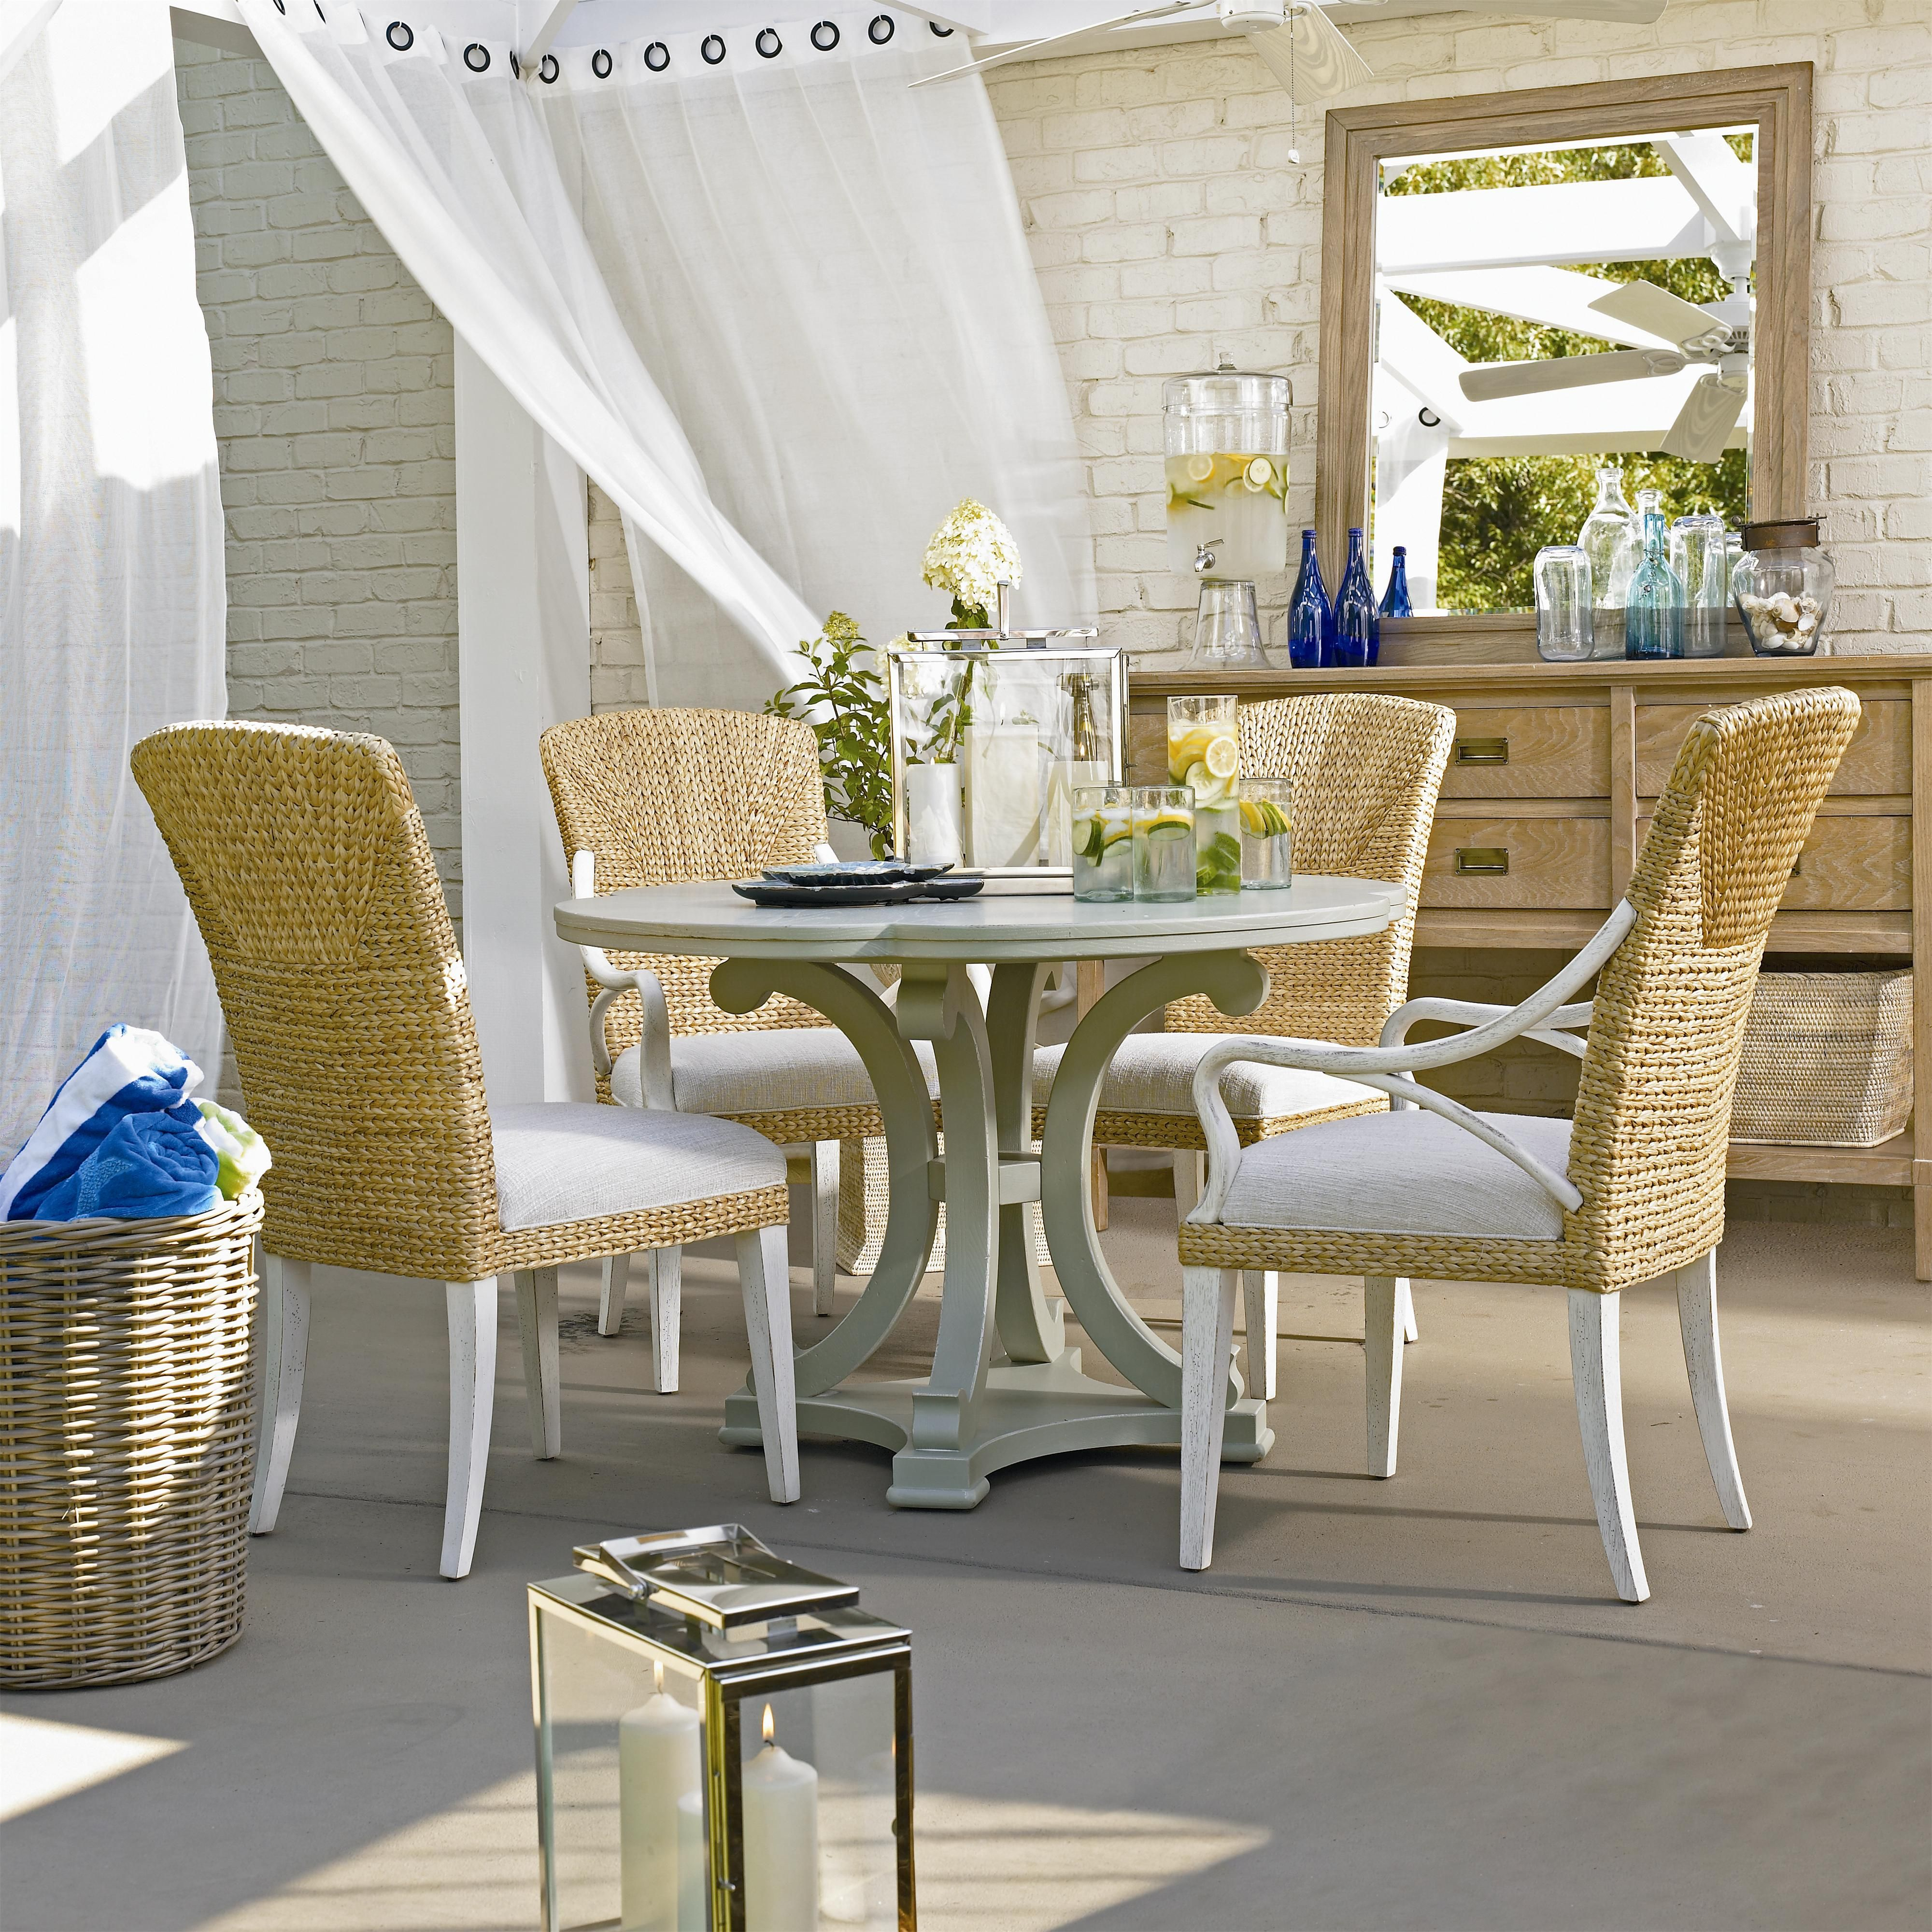 Coastal living resort 5 piece table and chair set by stanley furniture